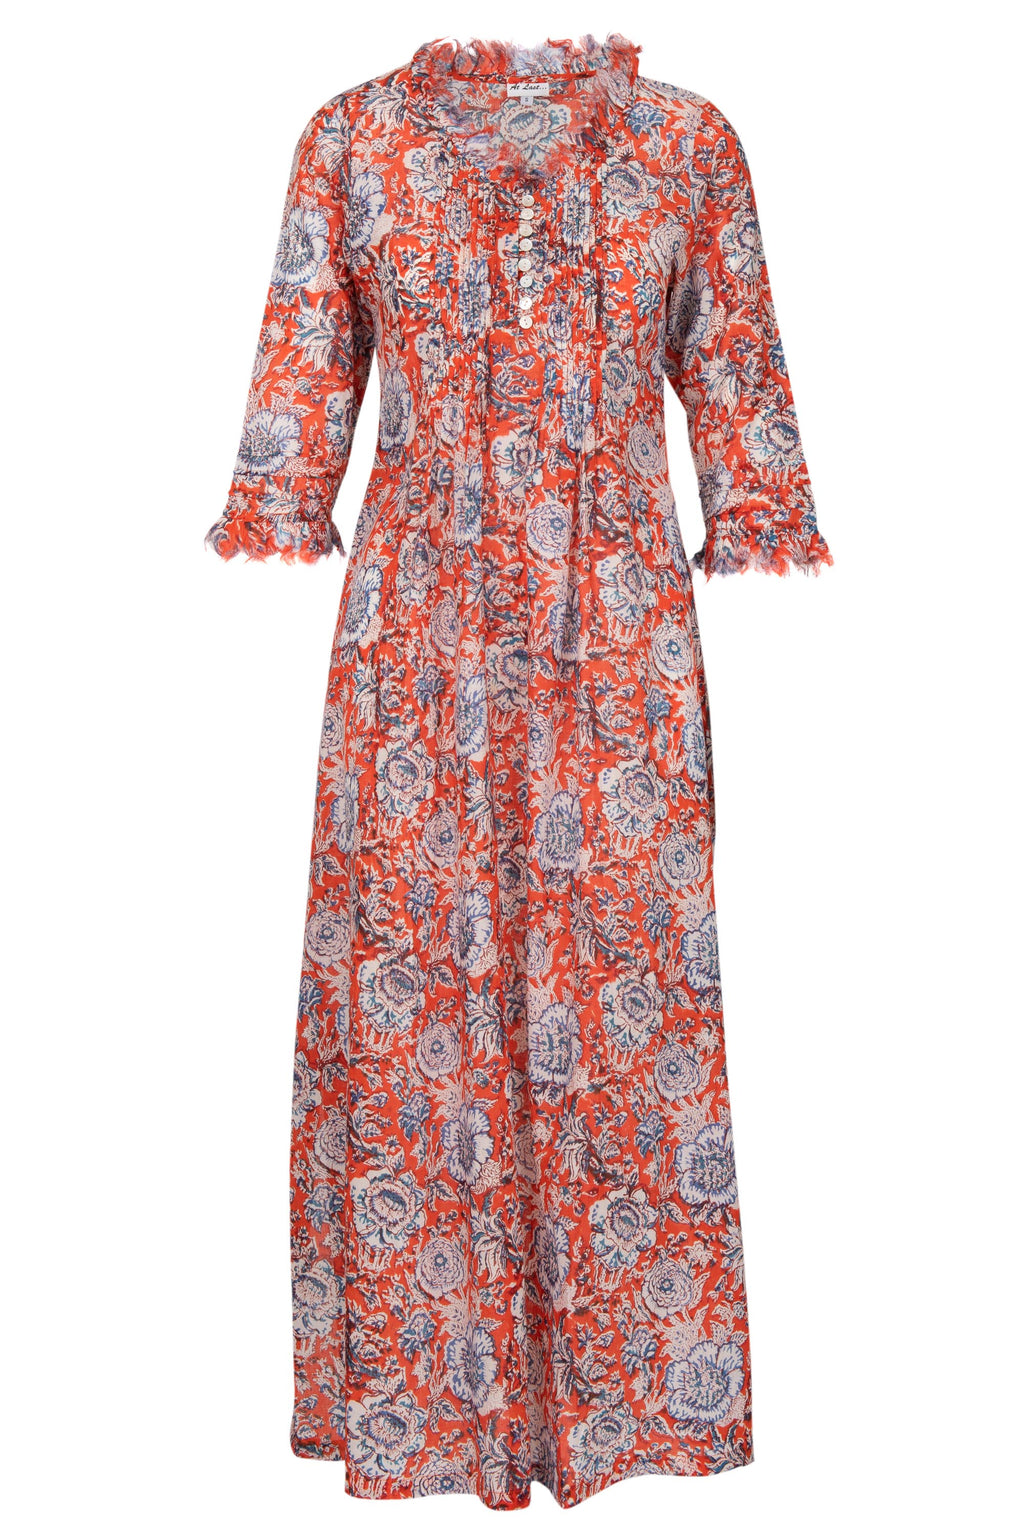 Annabel Maxi Dress - Orange Flower